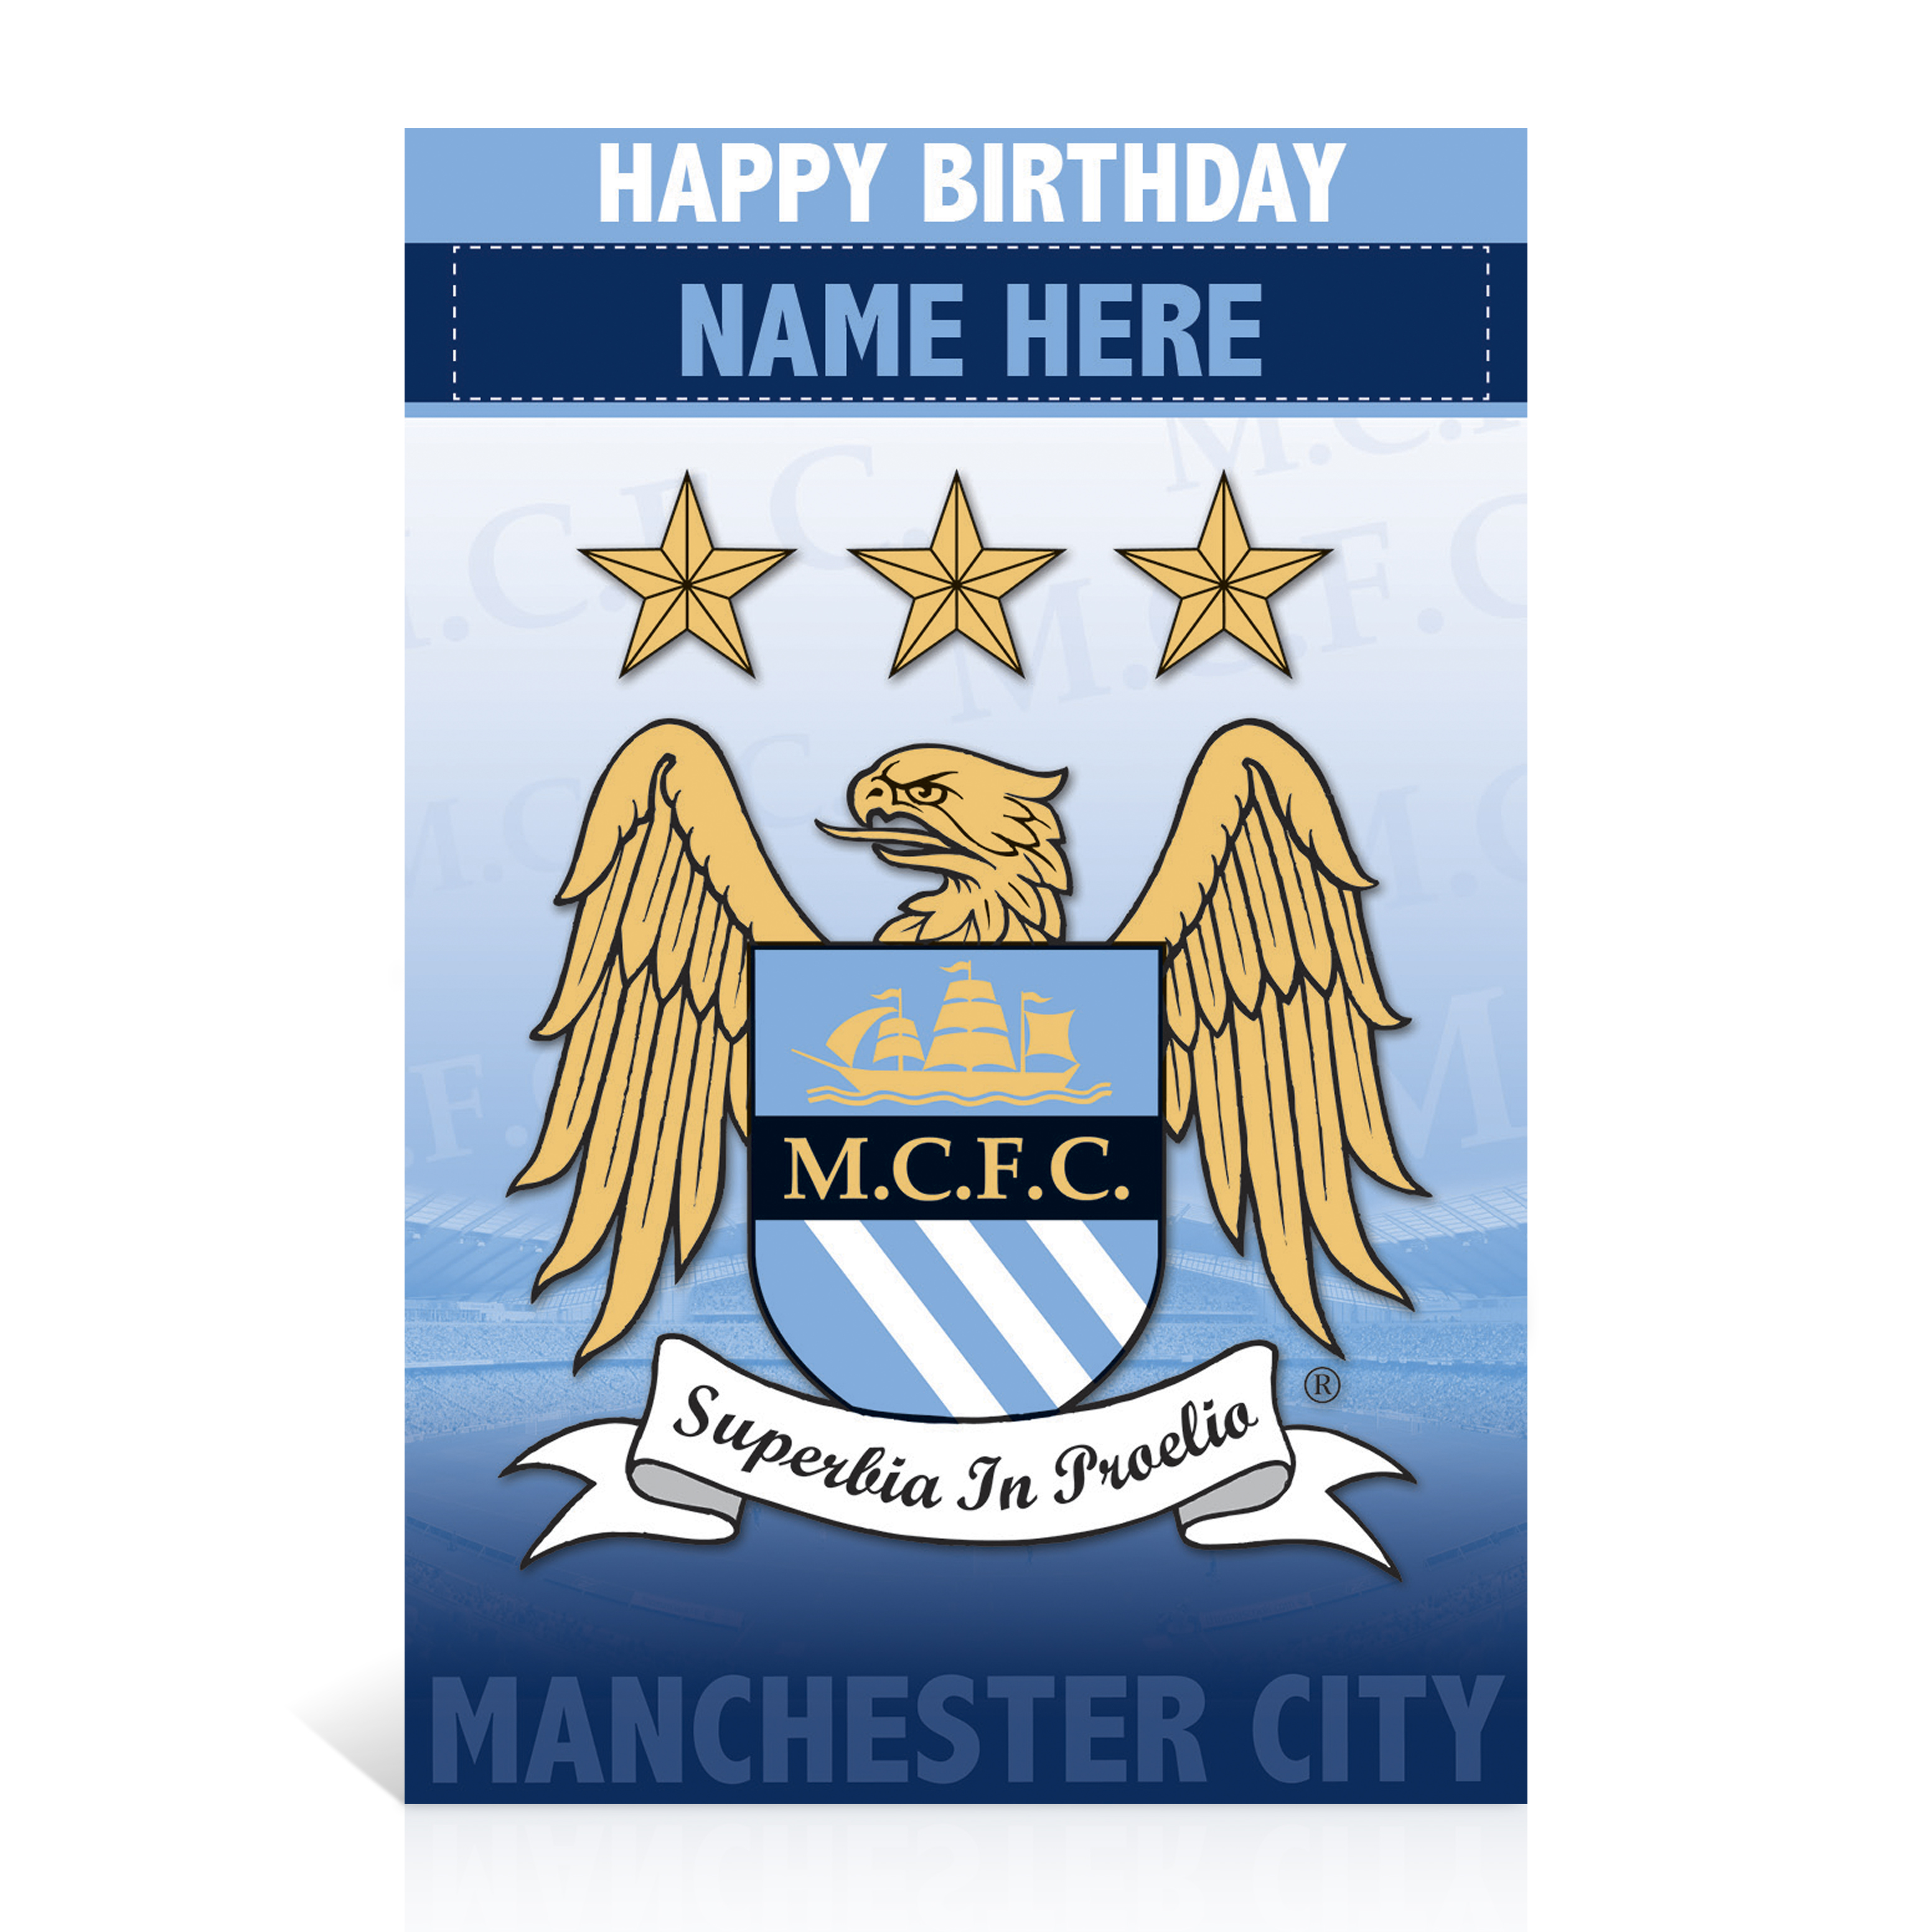 Manchester City Personalised Happy Birthday Card - Crest